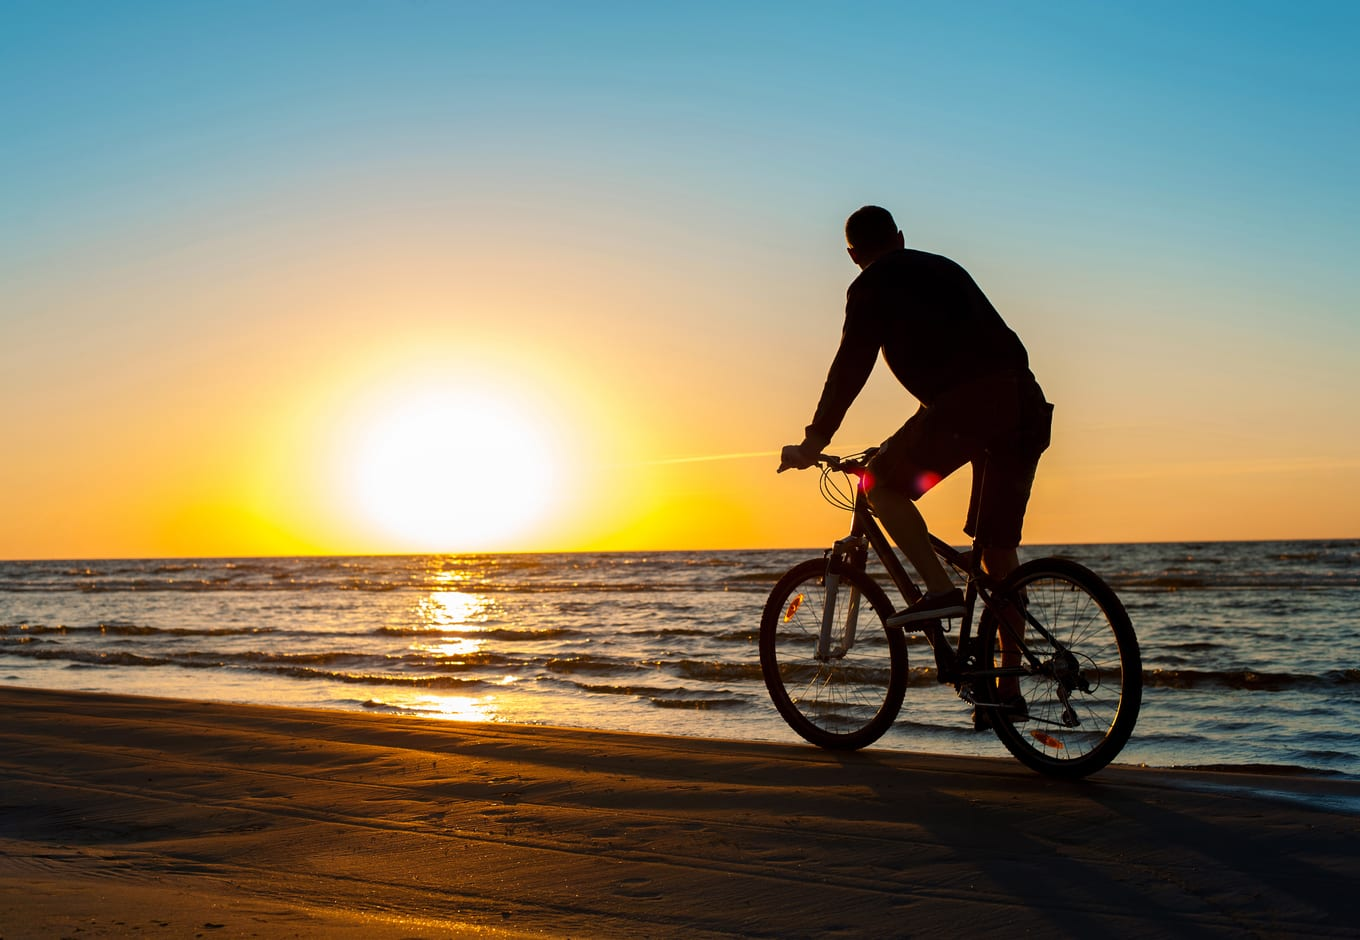 A man cyclist on the beach during the sunset.